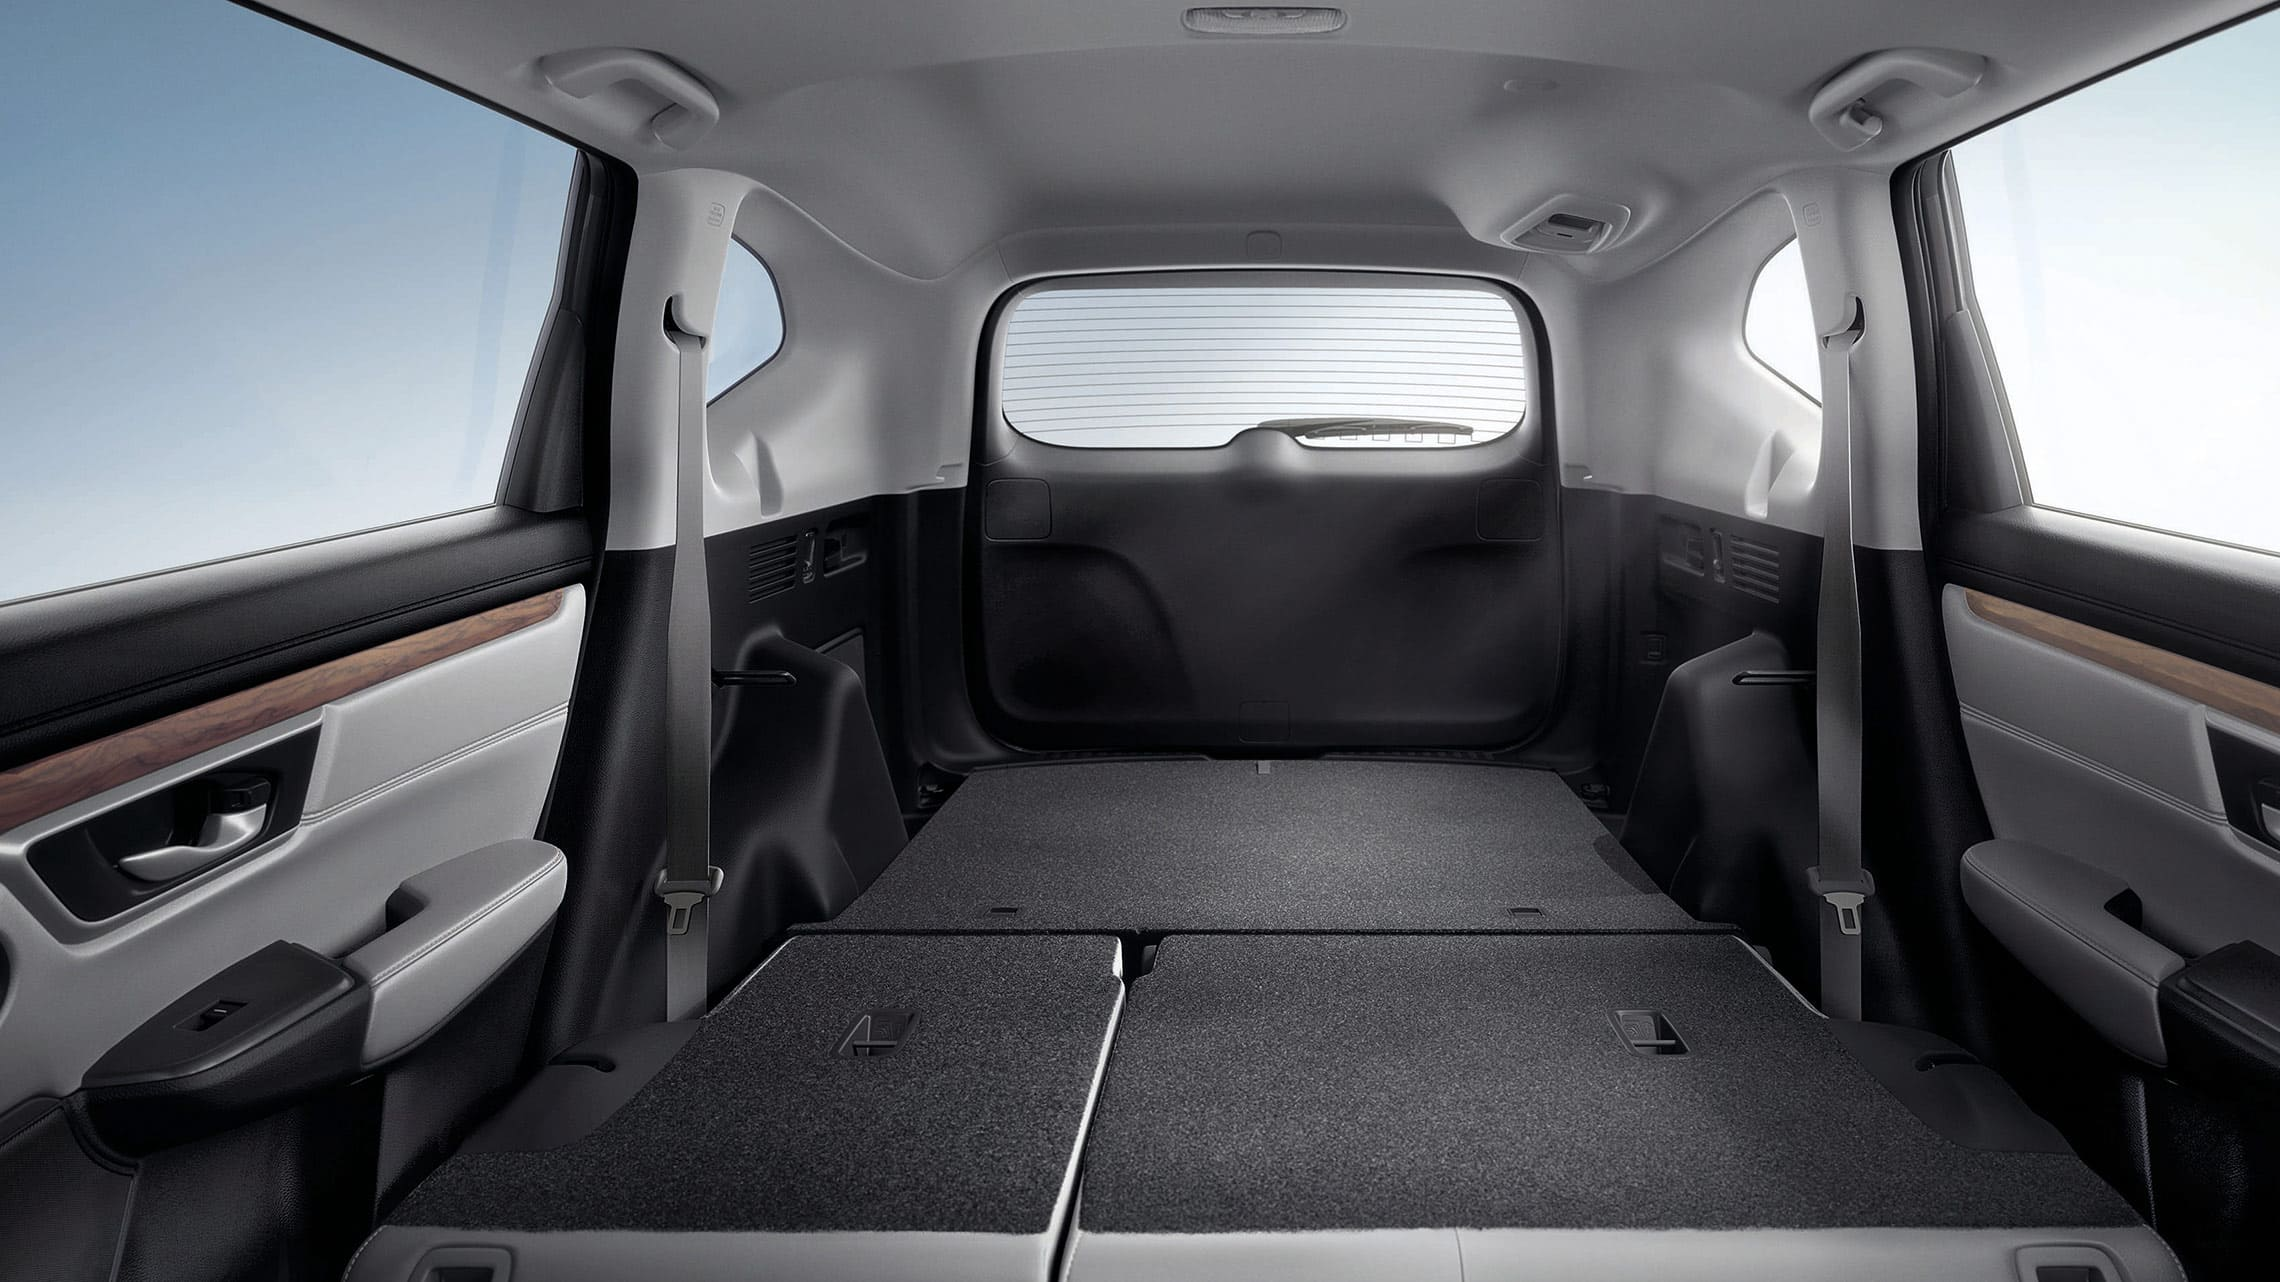 2019 Honda CR-V interior cargo view of easy fold-down 60/40 split rear seatback.